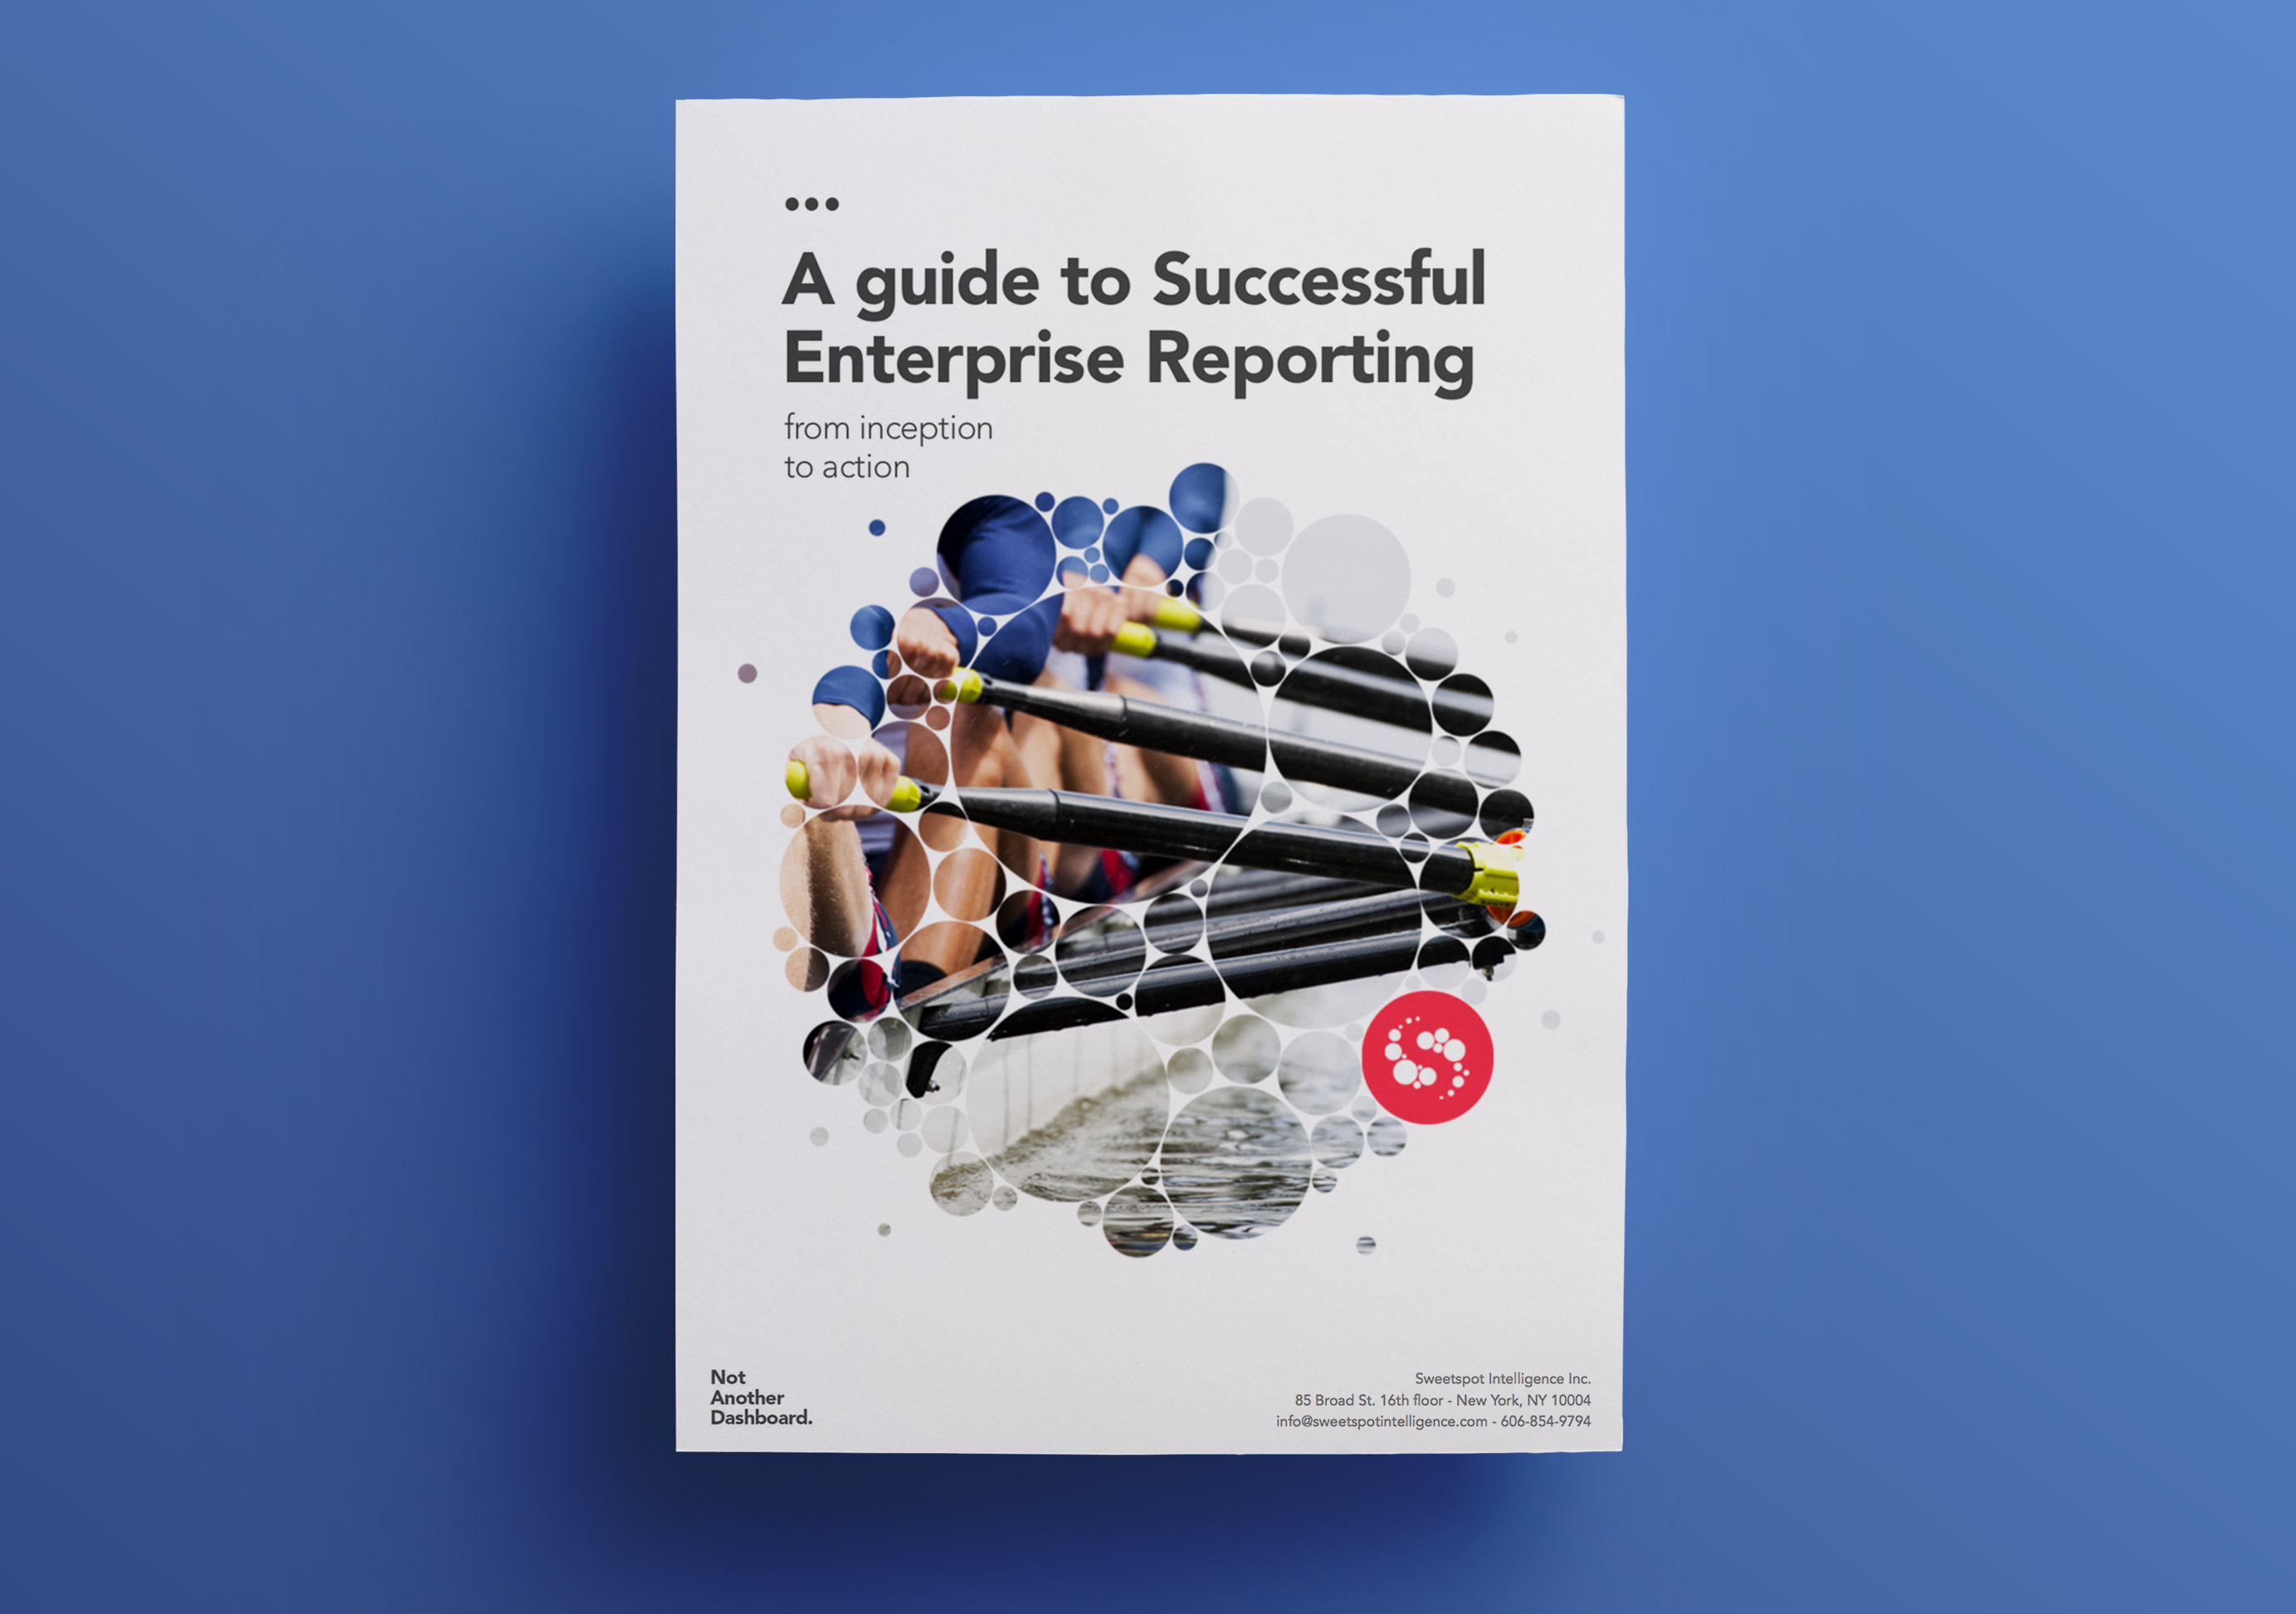 Book cover of a guide to successful enterprise reporting